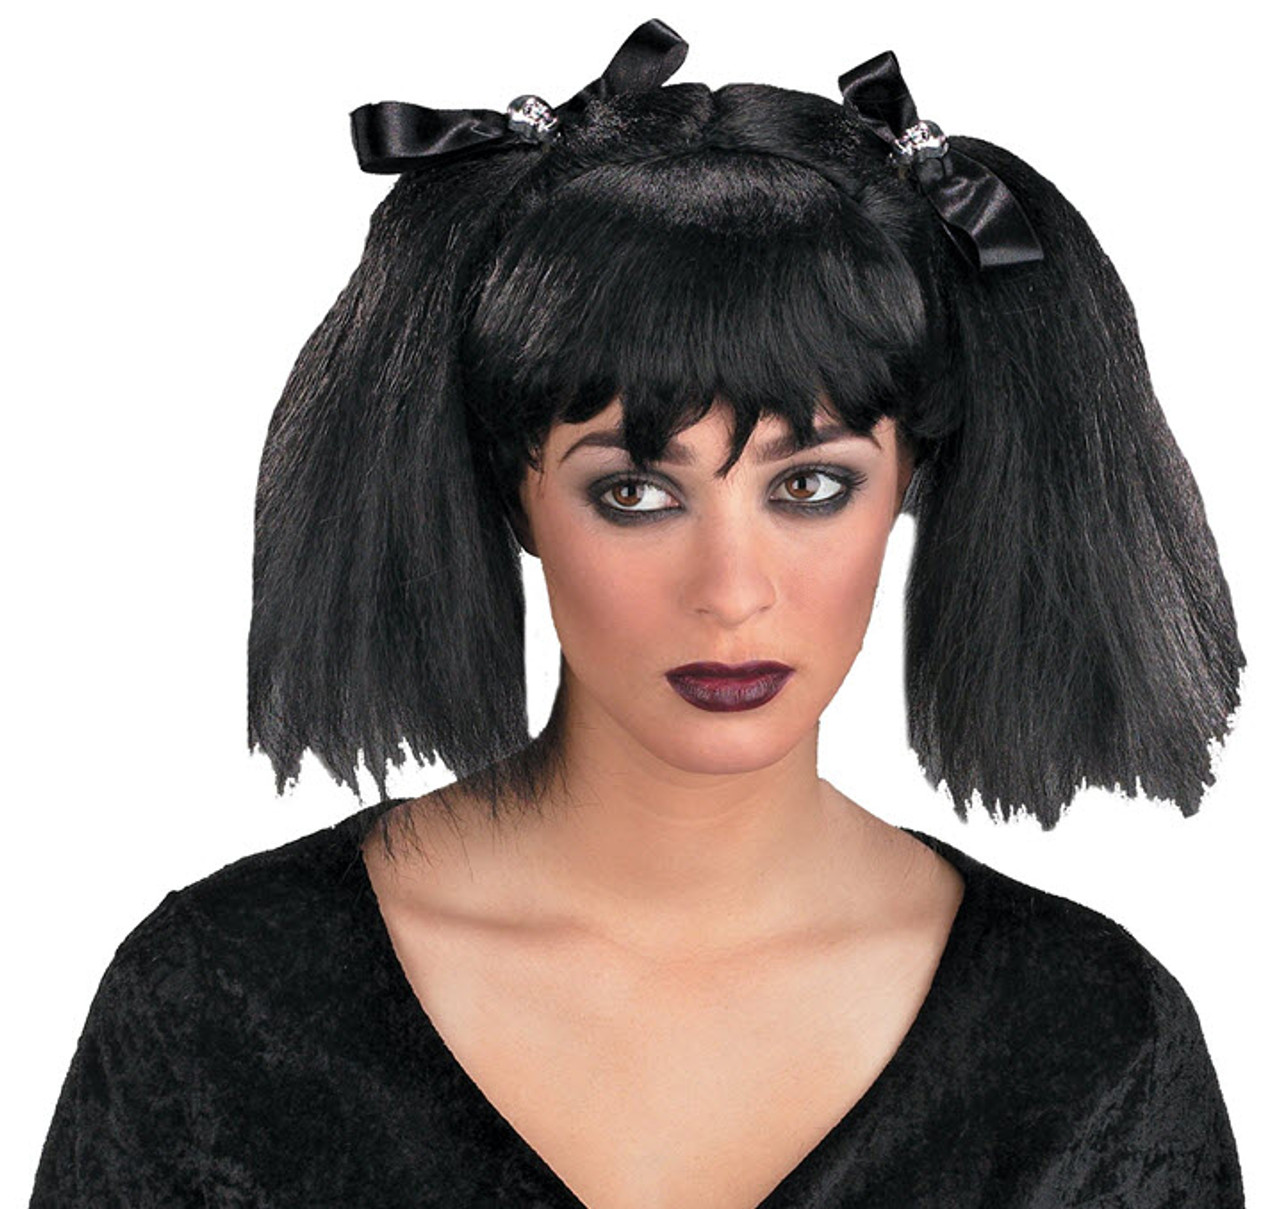 Black with Fringe Lady/'s Short 1960s Pop Star Style Fancy Dress Wig